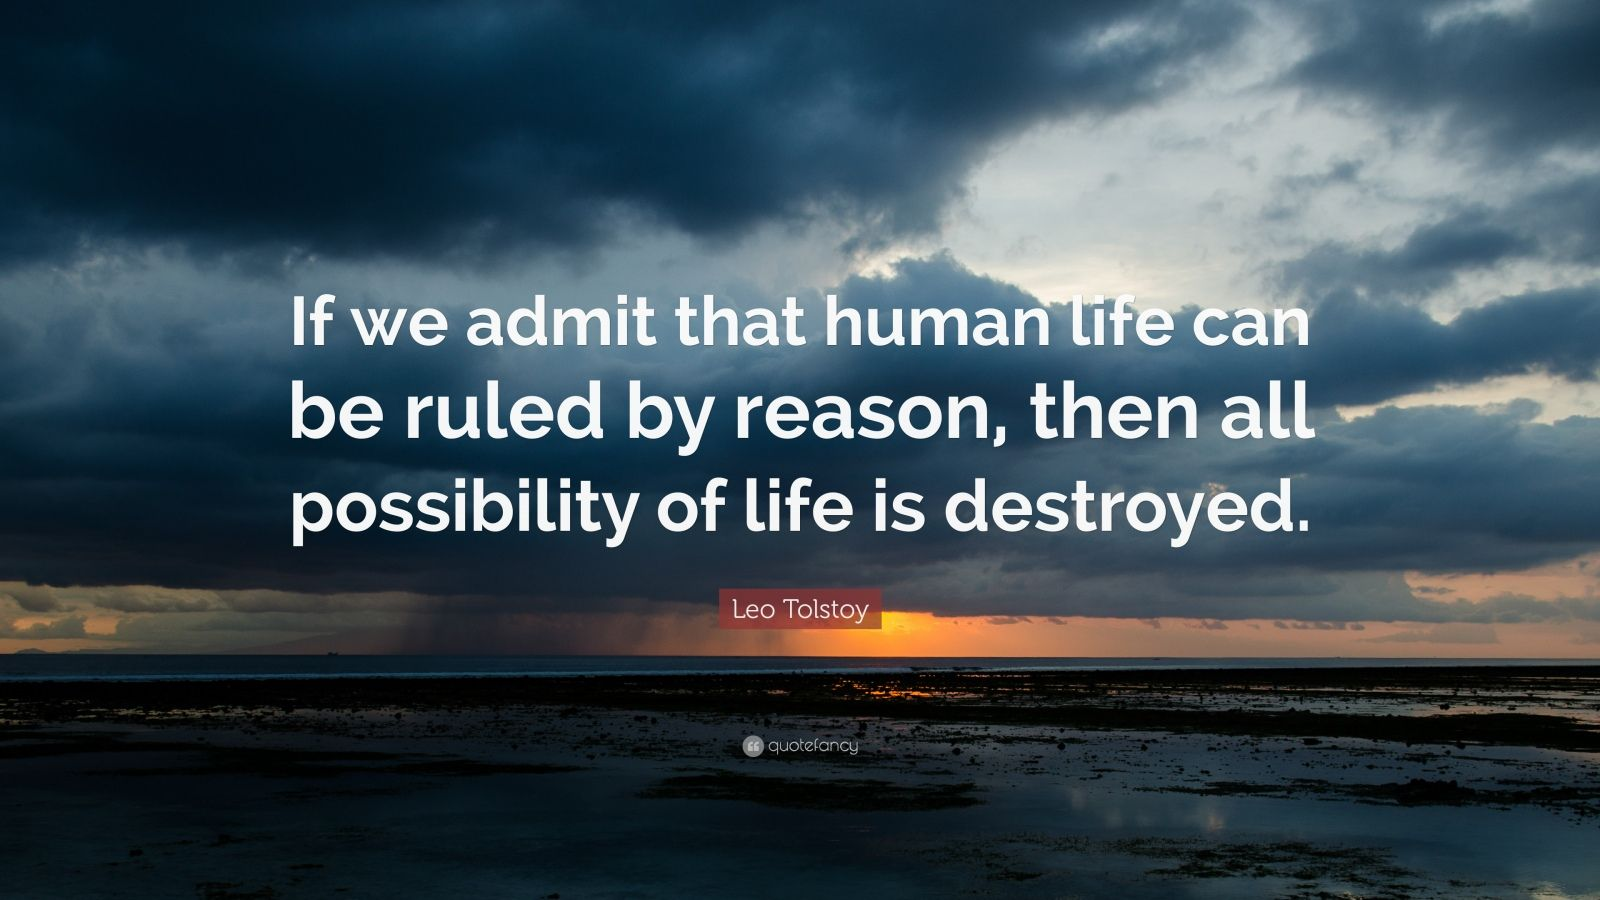 """Leo Tolstoy Quote: """"If we admit that human life can be ruled by reason, then all possibility of life is destroyed."""""""